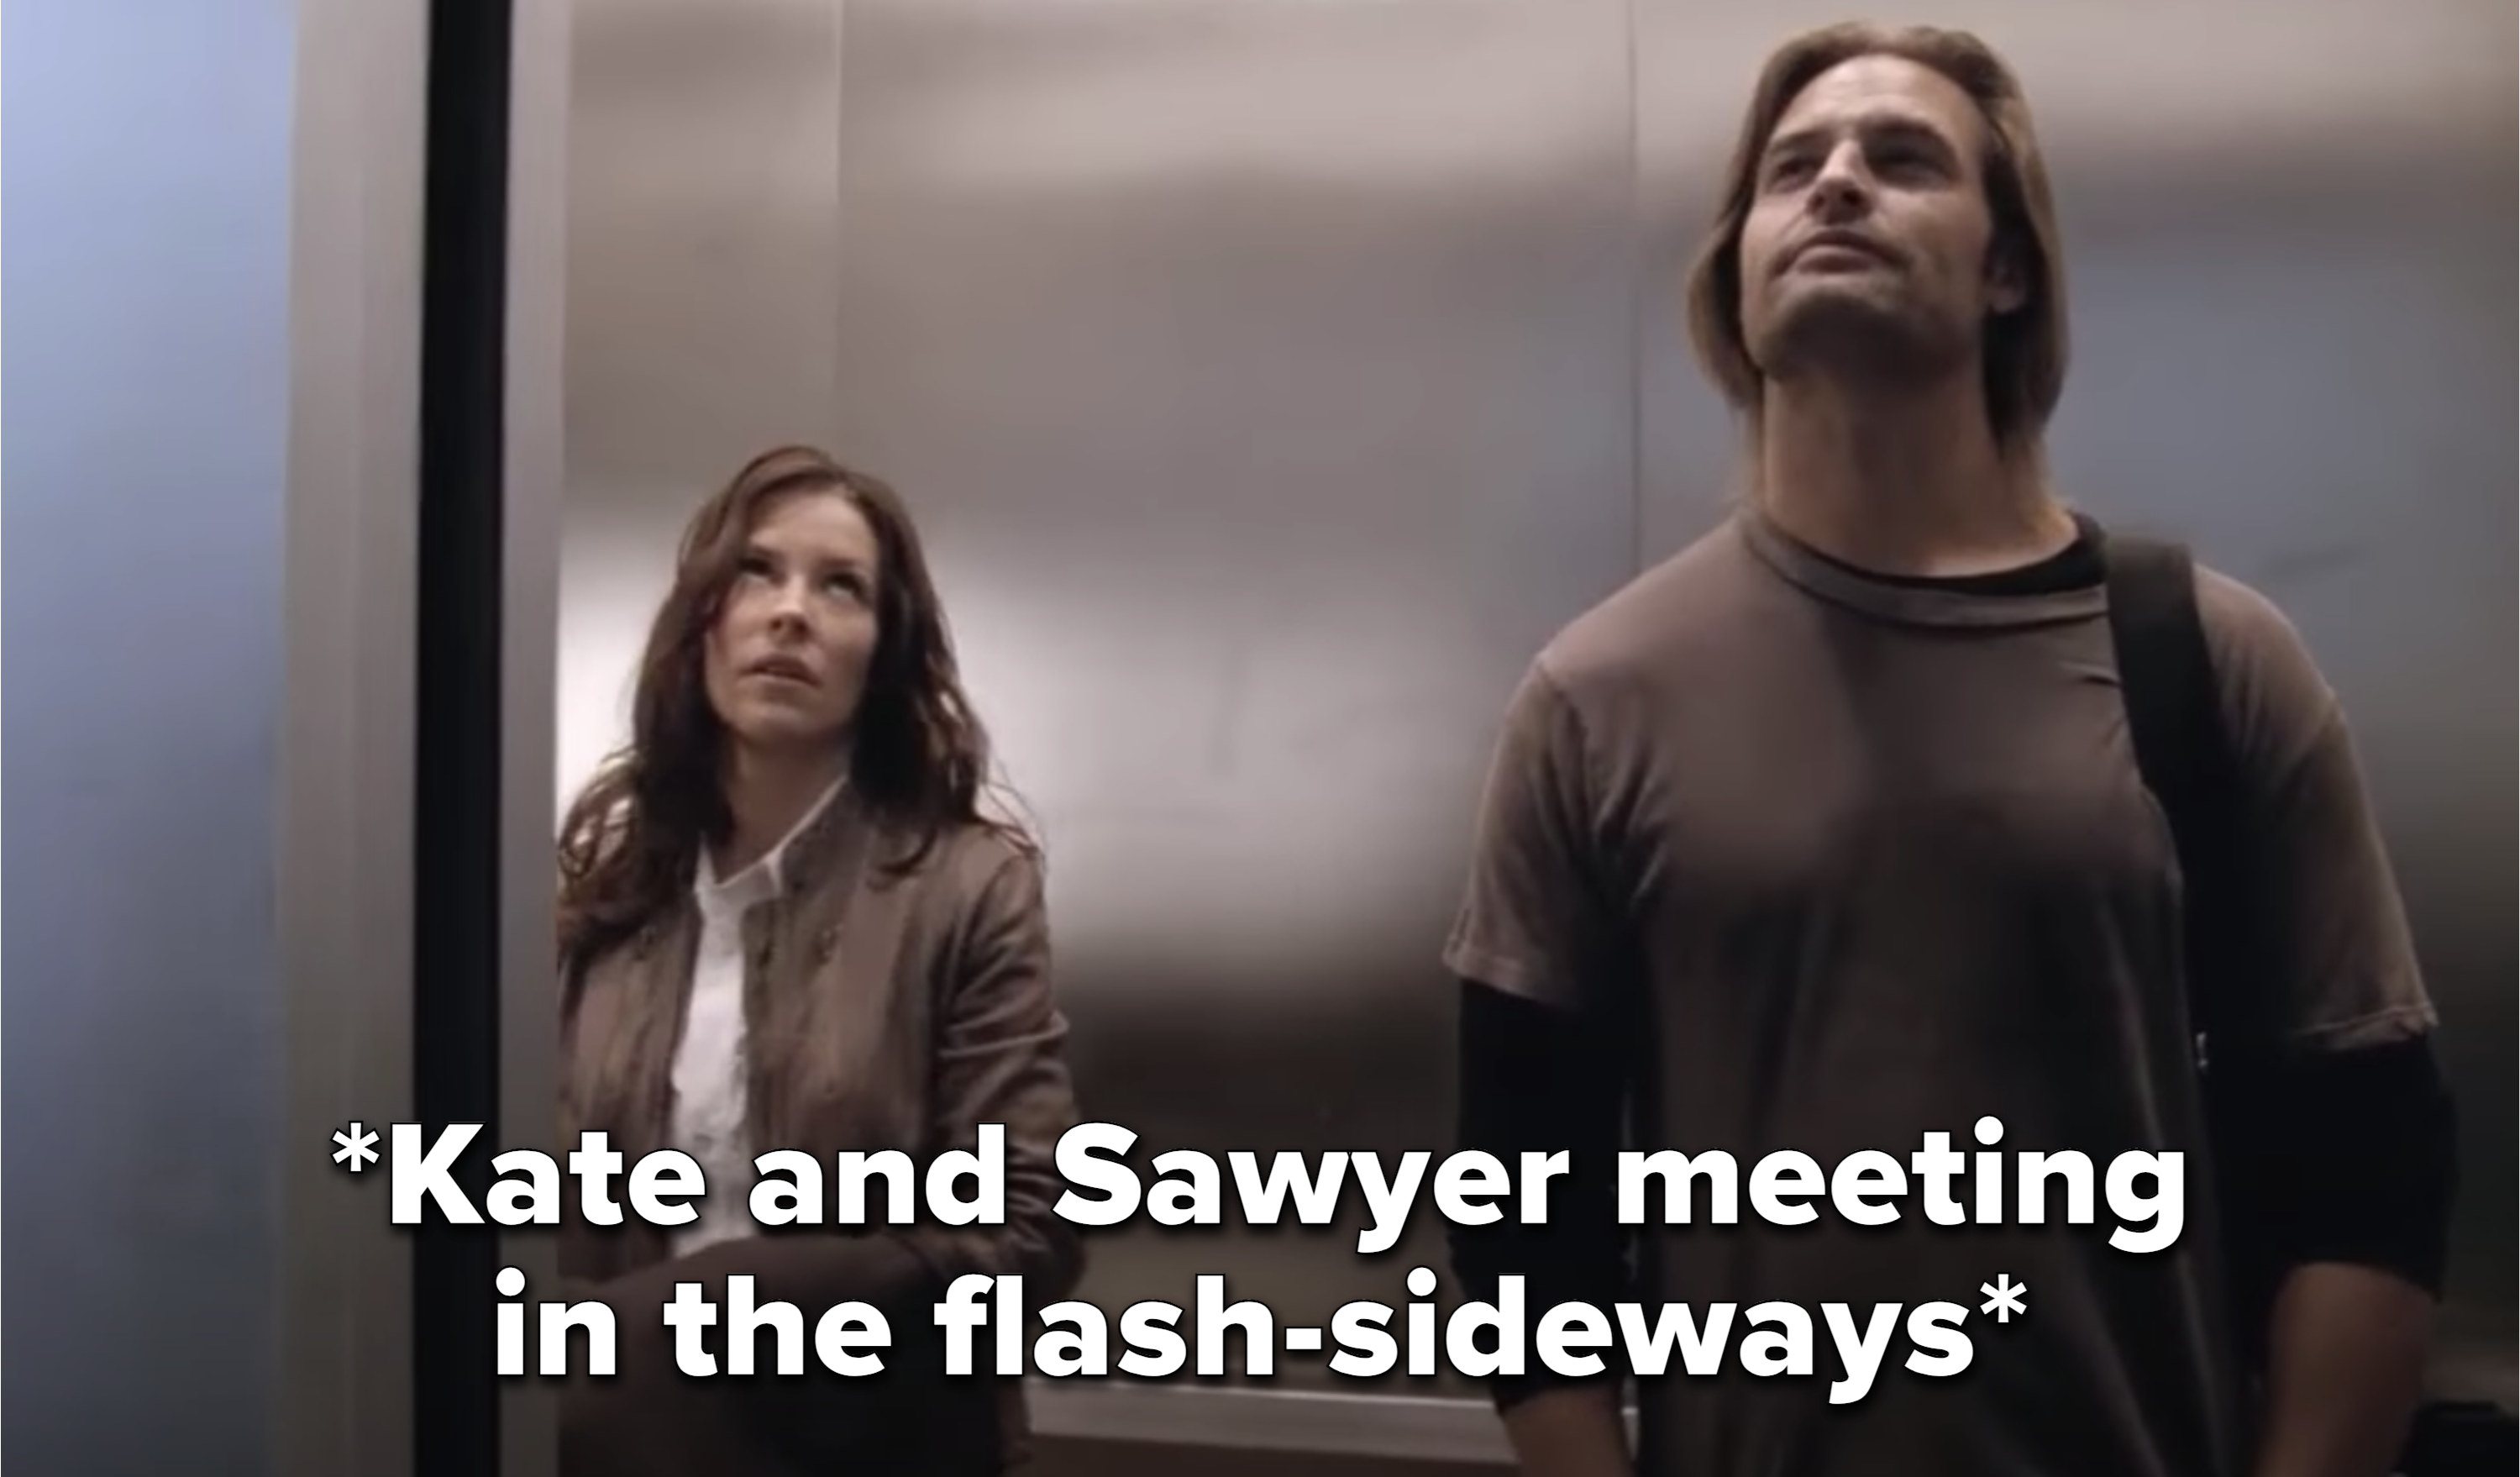 Kate and Sawyer meeting in the elevator in the flash-sideways